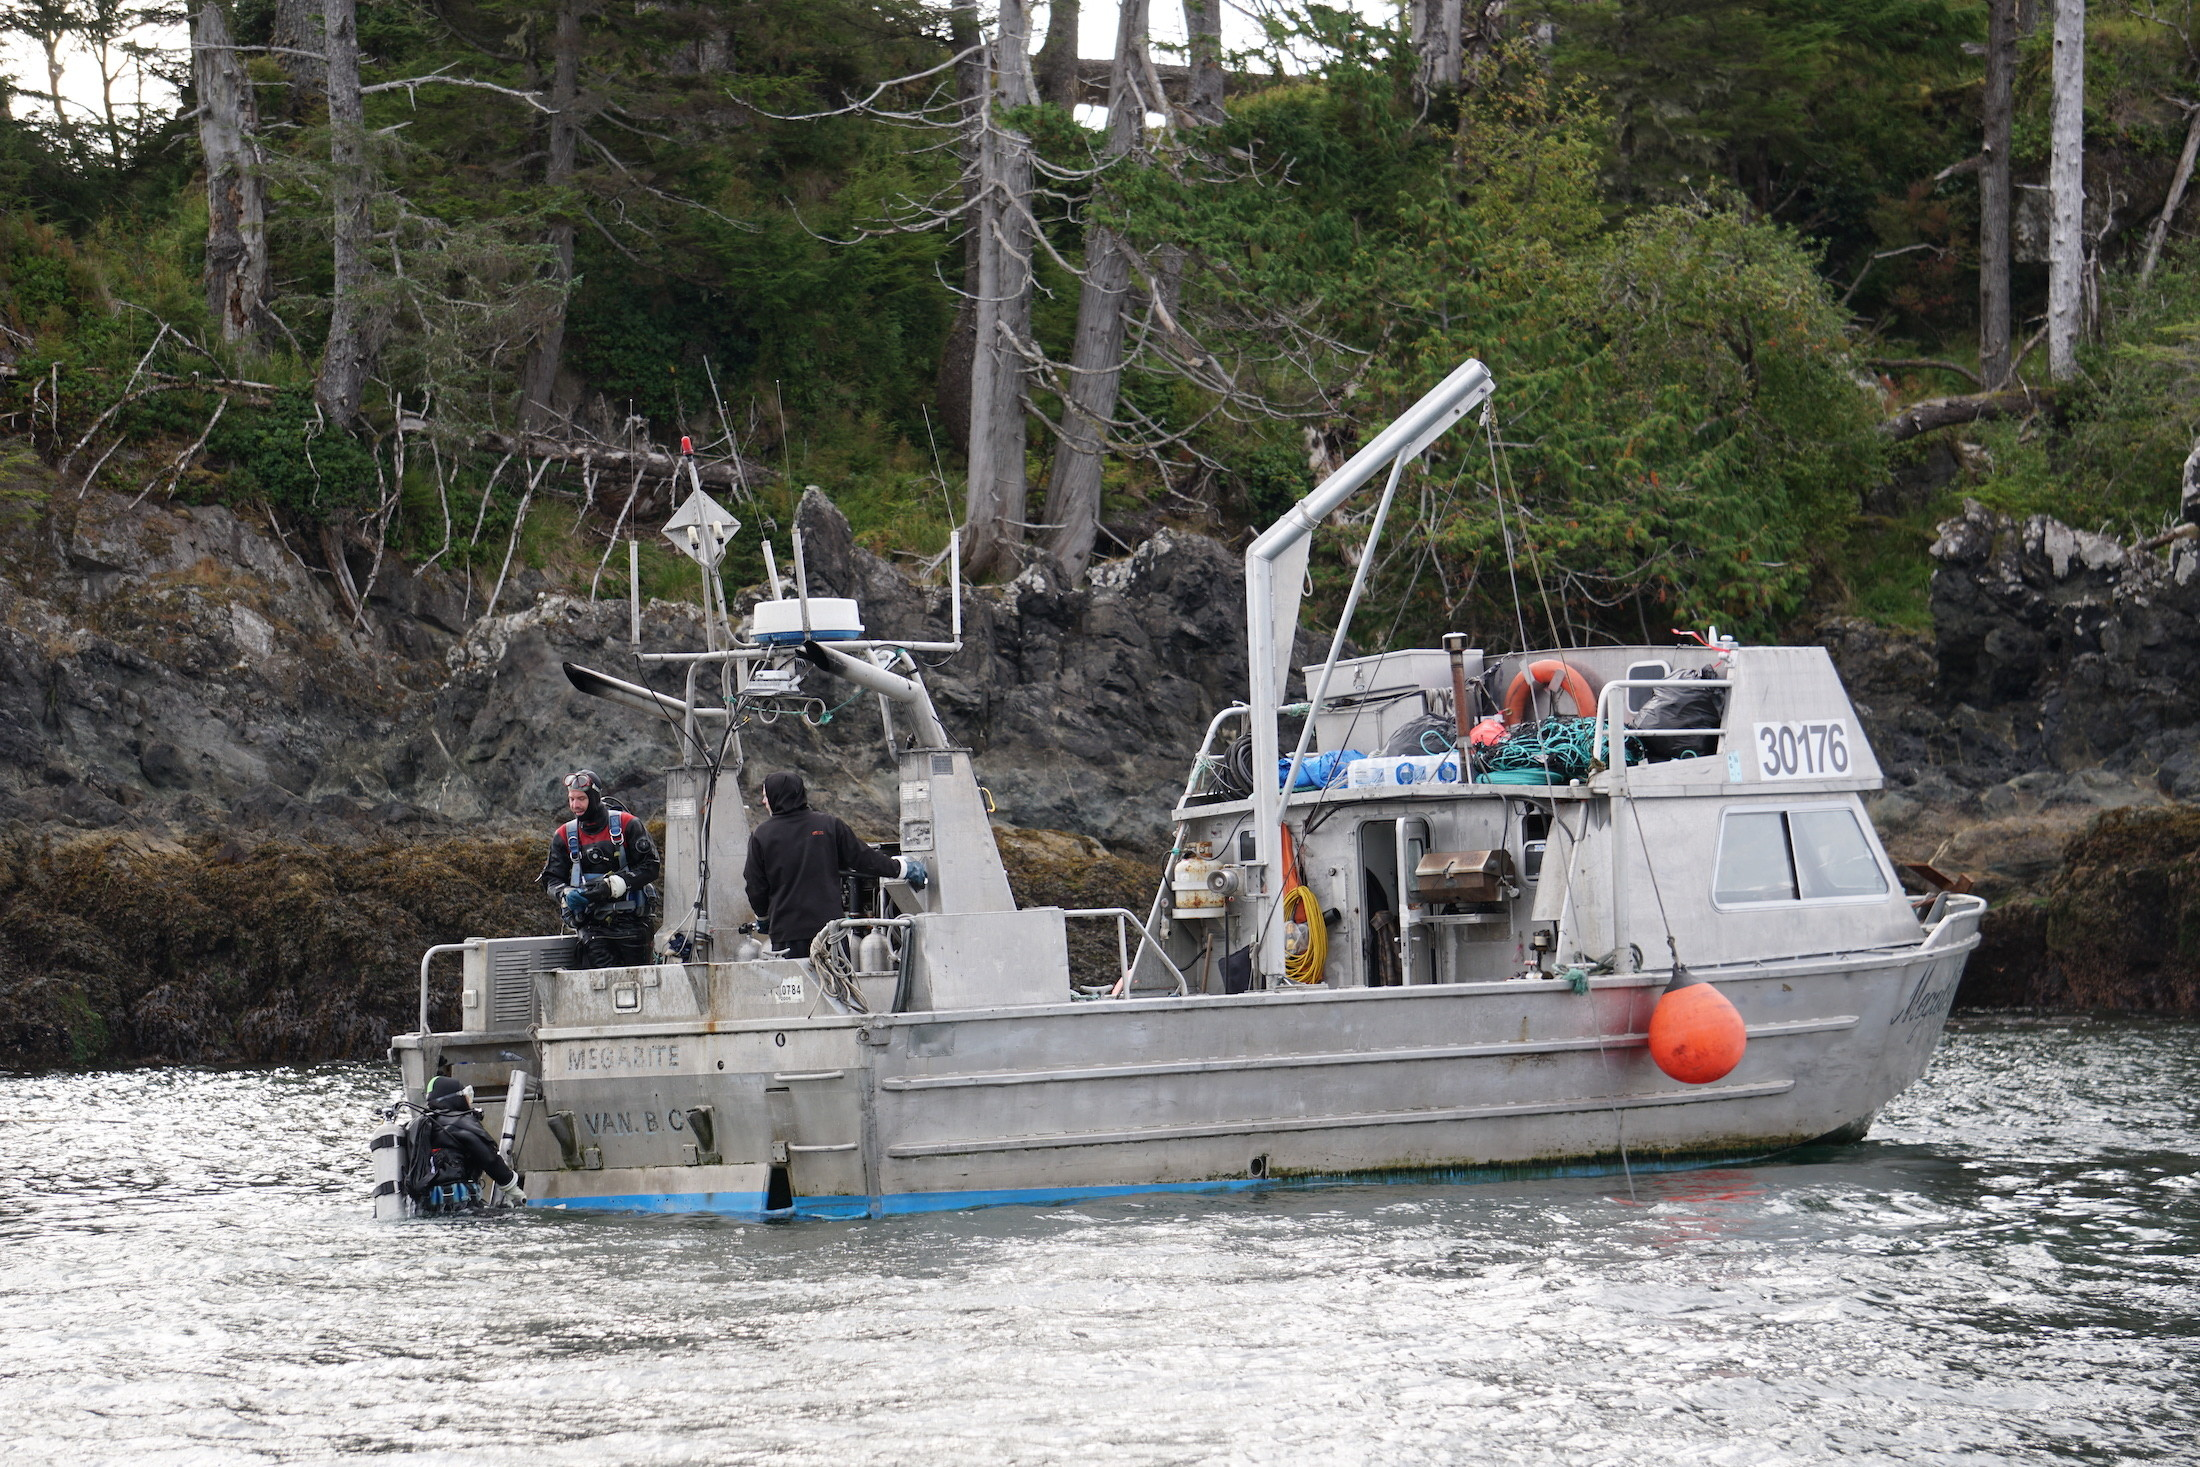 Commercial urchin divers wrap up a day working to restore the kelp forest ecosystem off Haida Gwaii by collecting sea urchins and distributing their roe to local communities. Photo: C. Houston